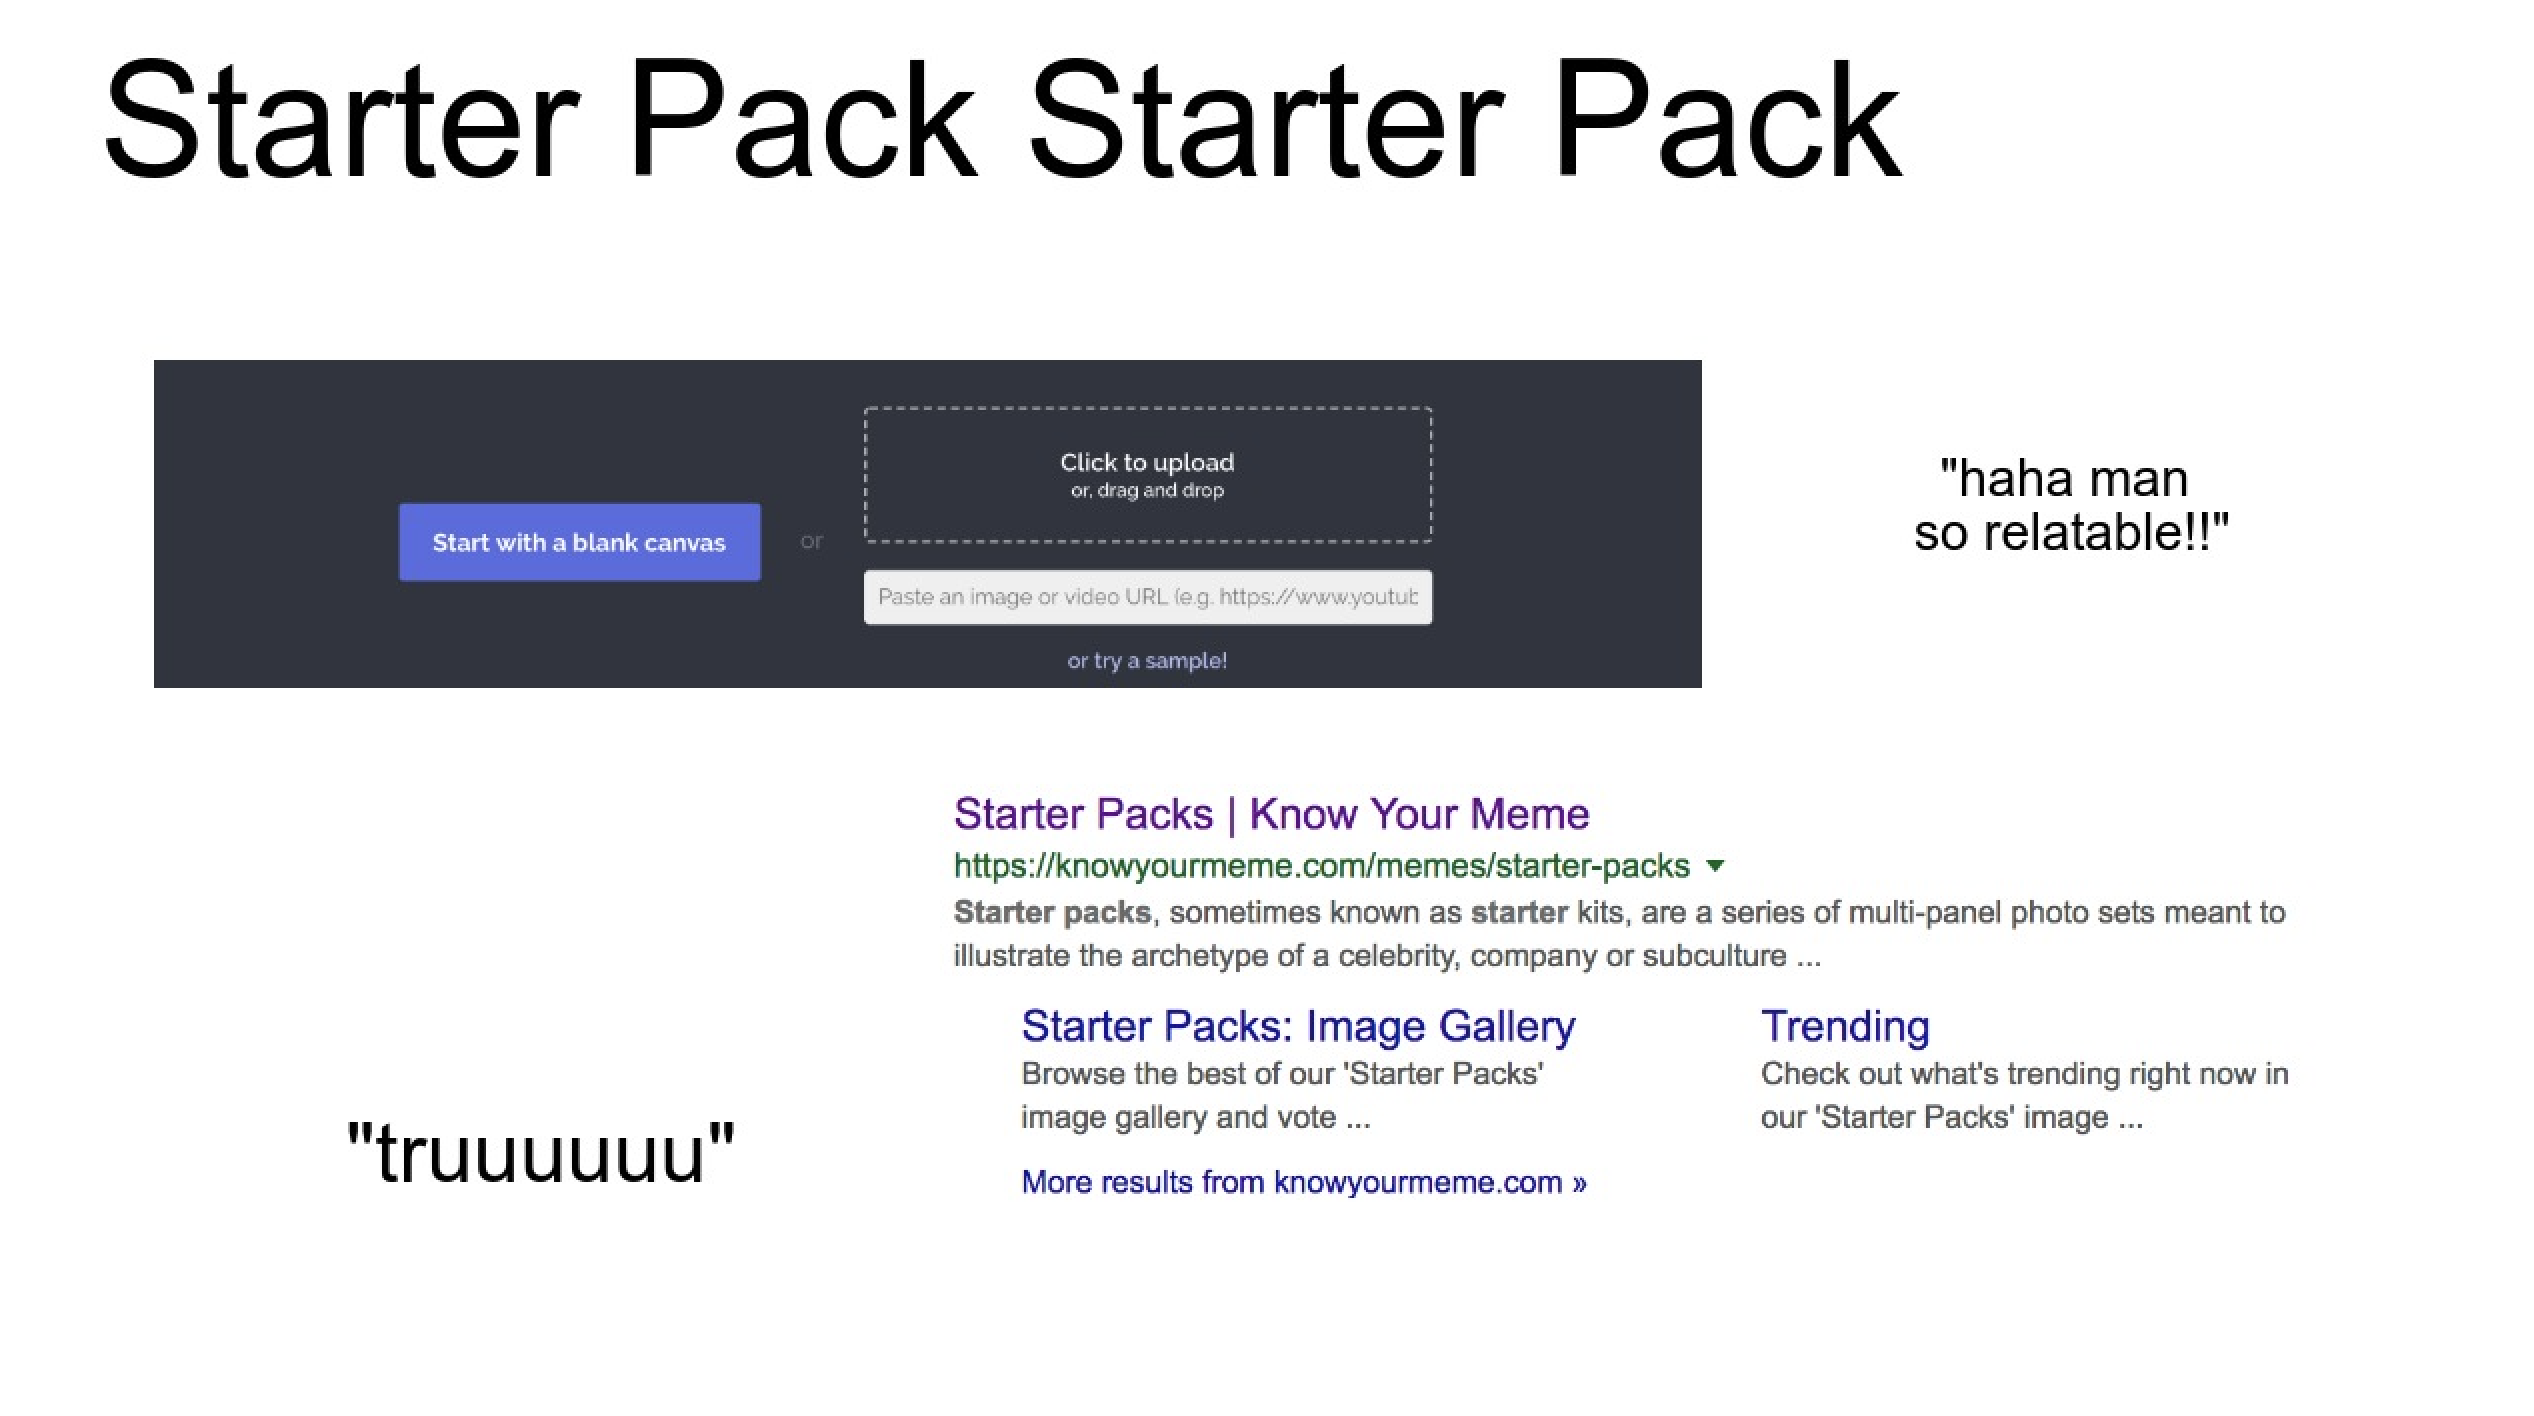 How to Make Your Own Starter Pack Meme